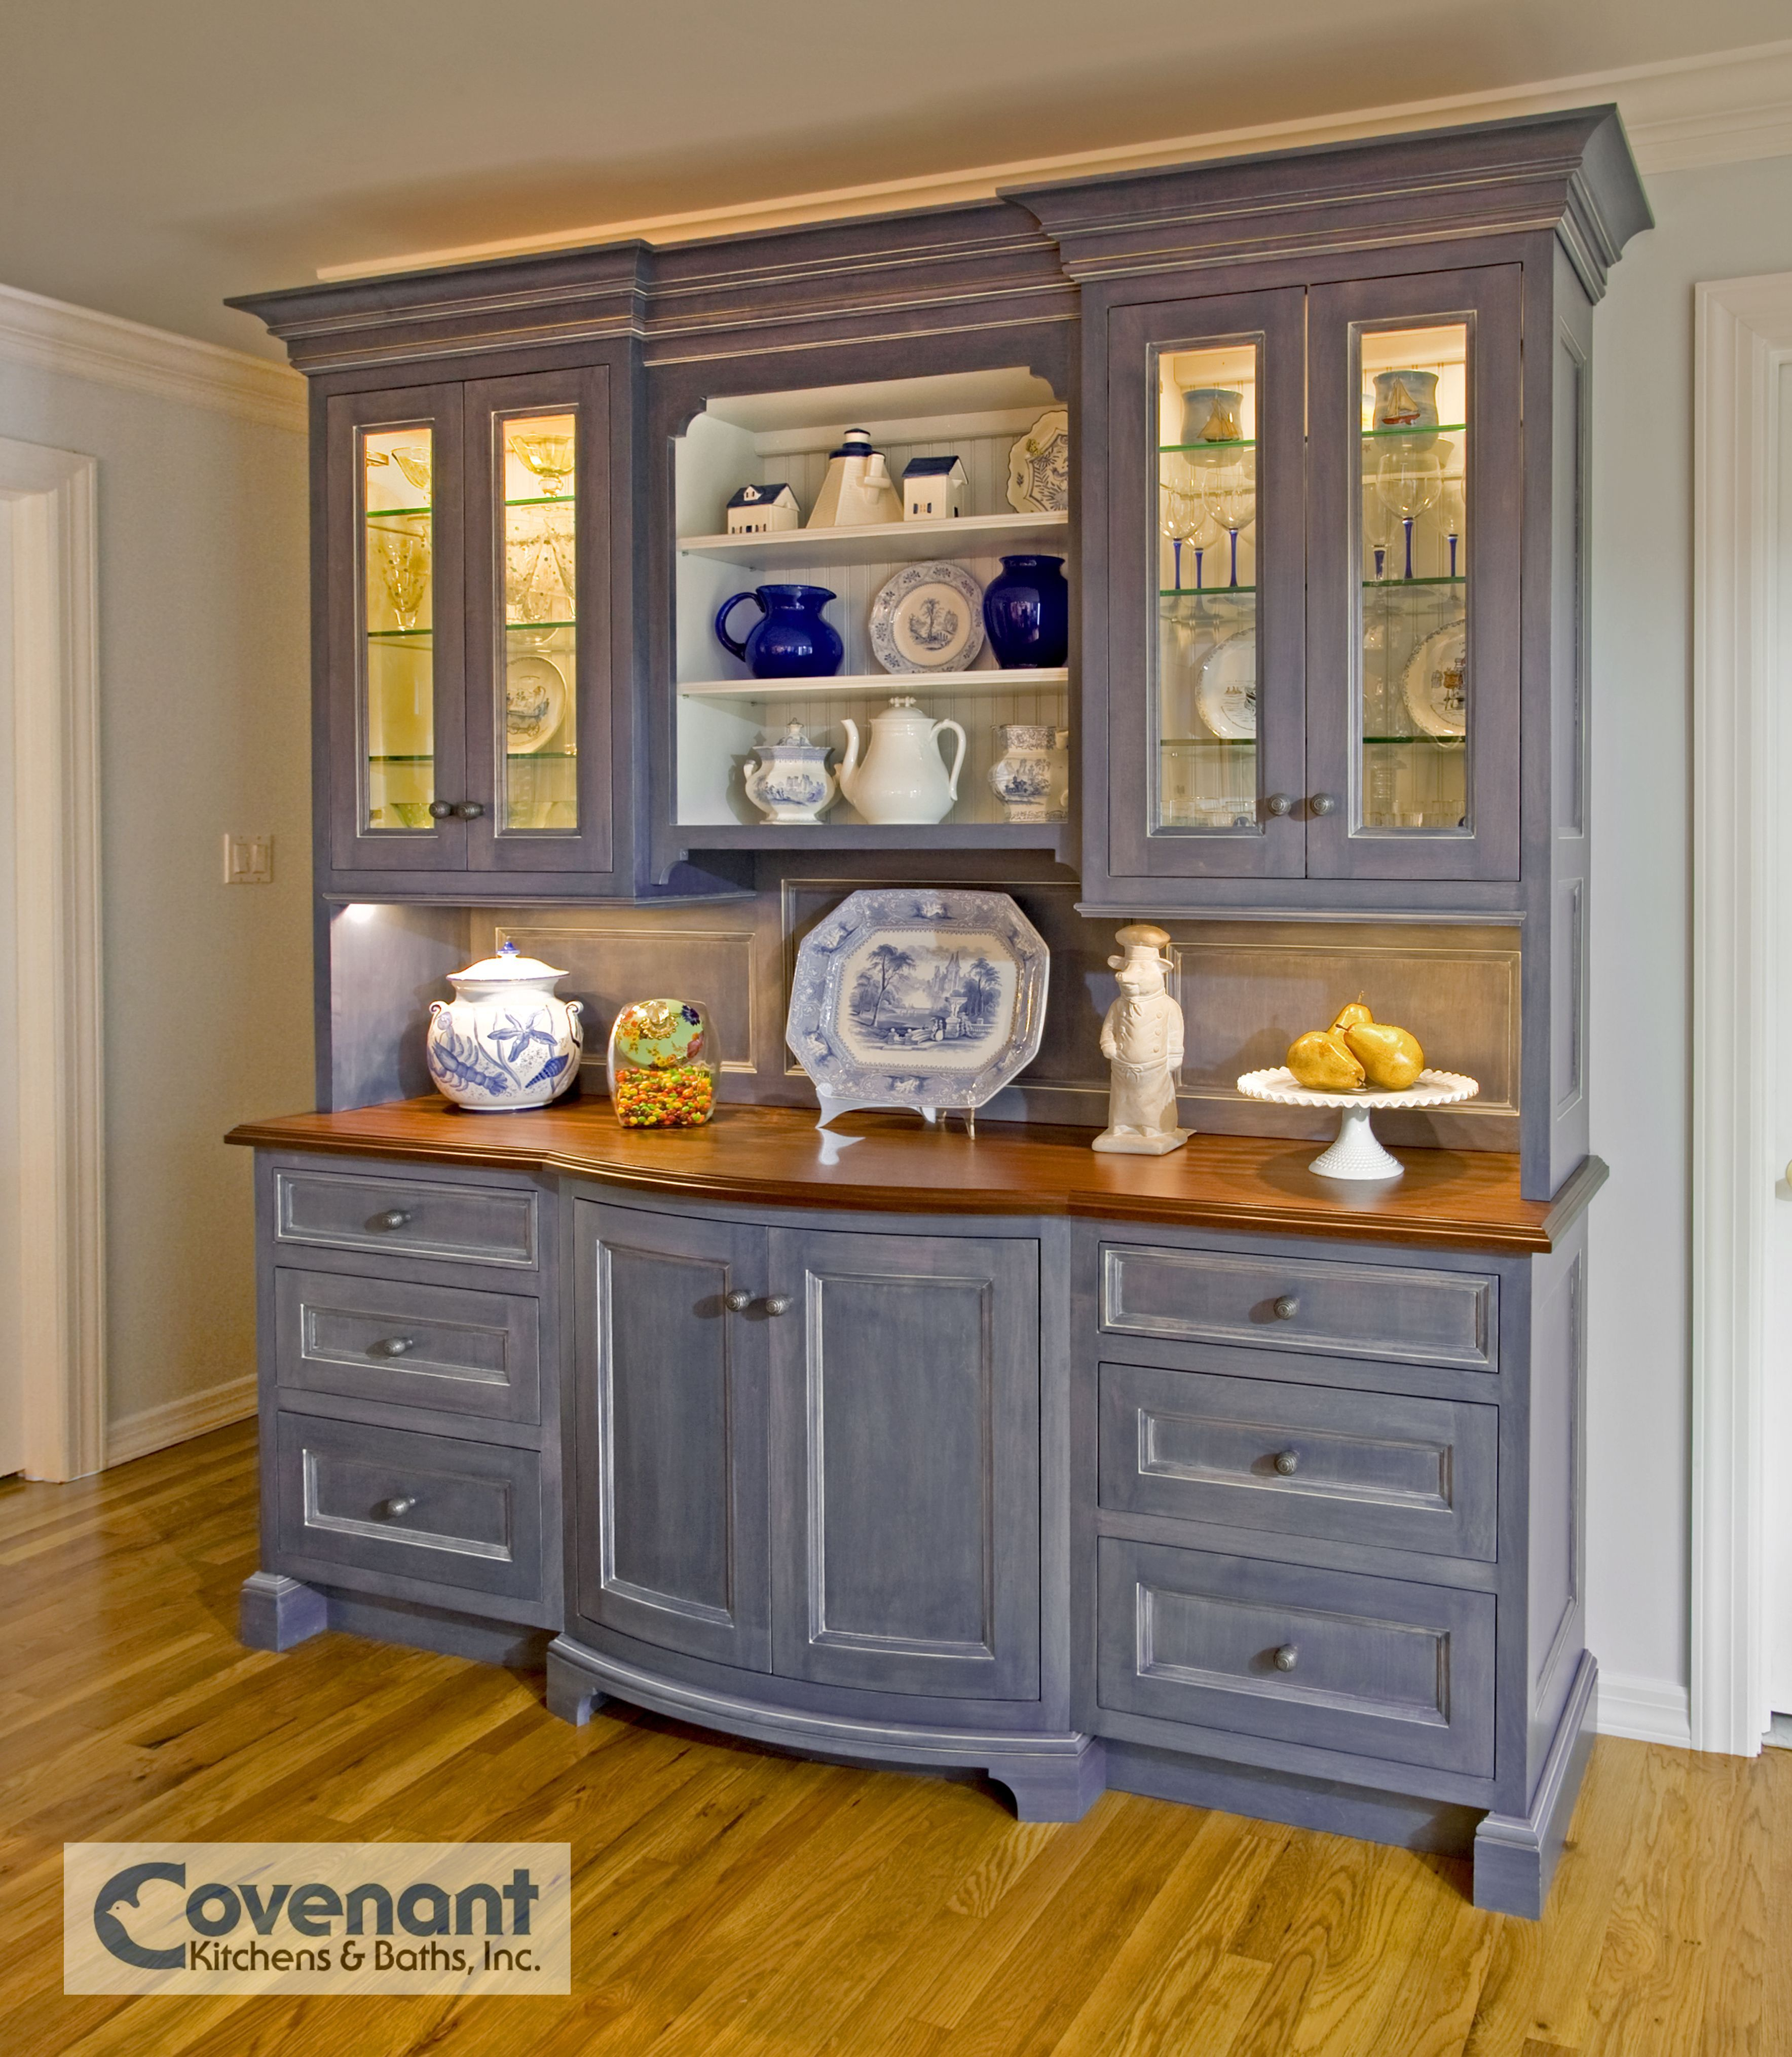 Pin On Kitchens By Covenant